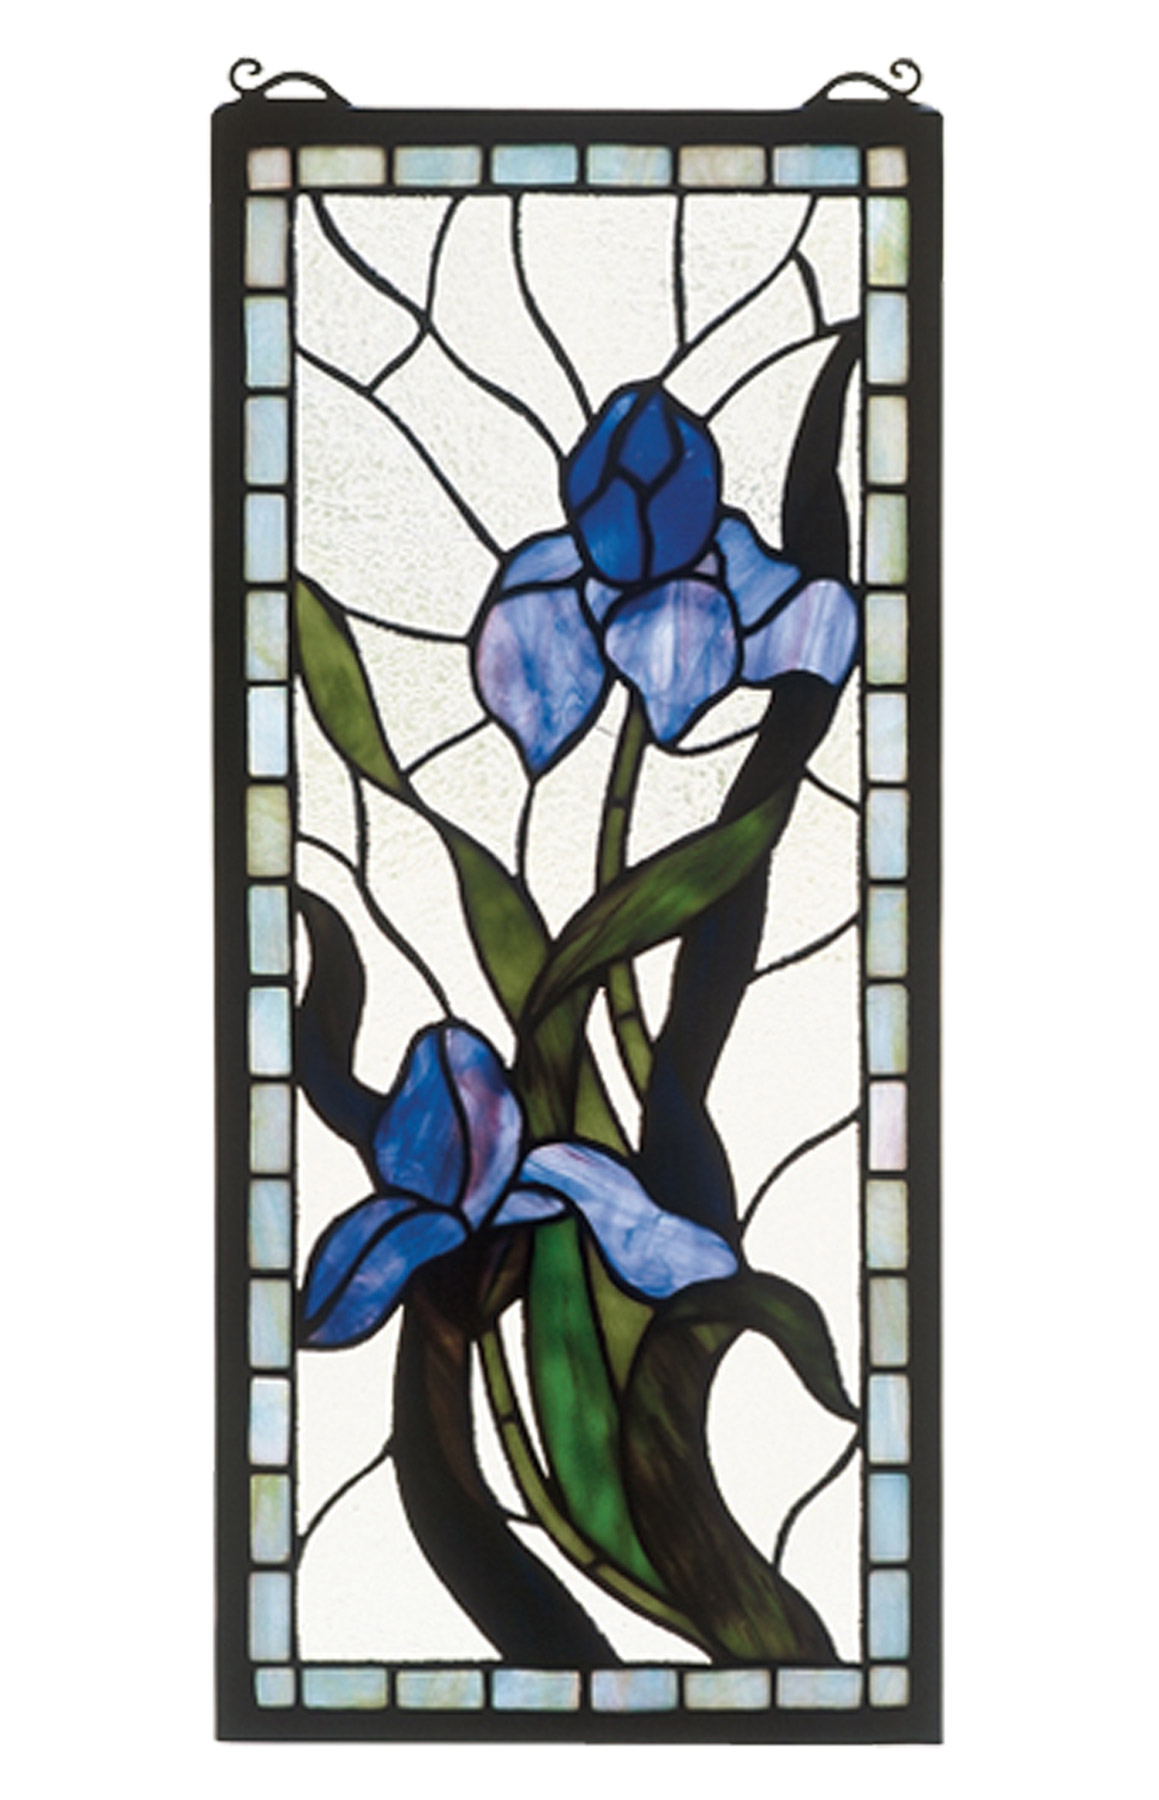 Meyda 36073 Tiffany Iris Stained Glass Window